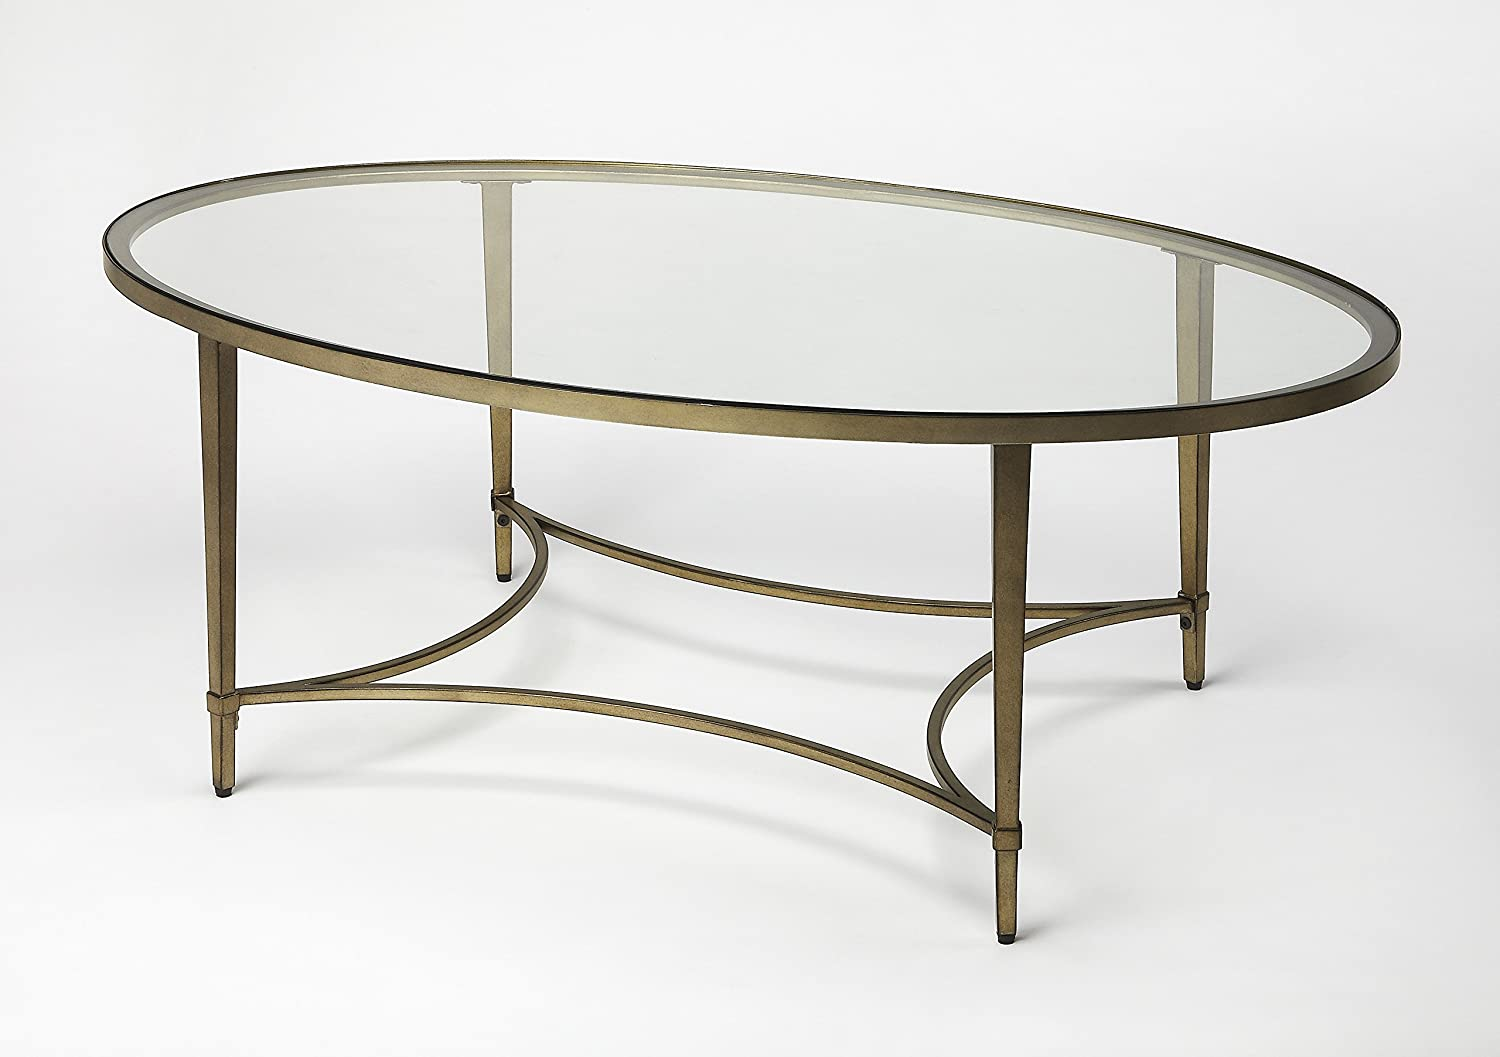 Gold Butler Monica Home Decorative Oval Tempered Glass sCoffee Table